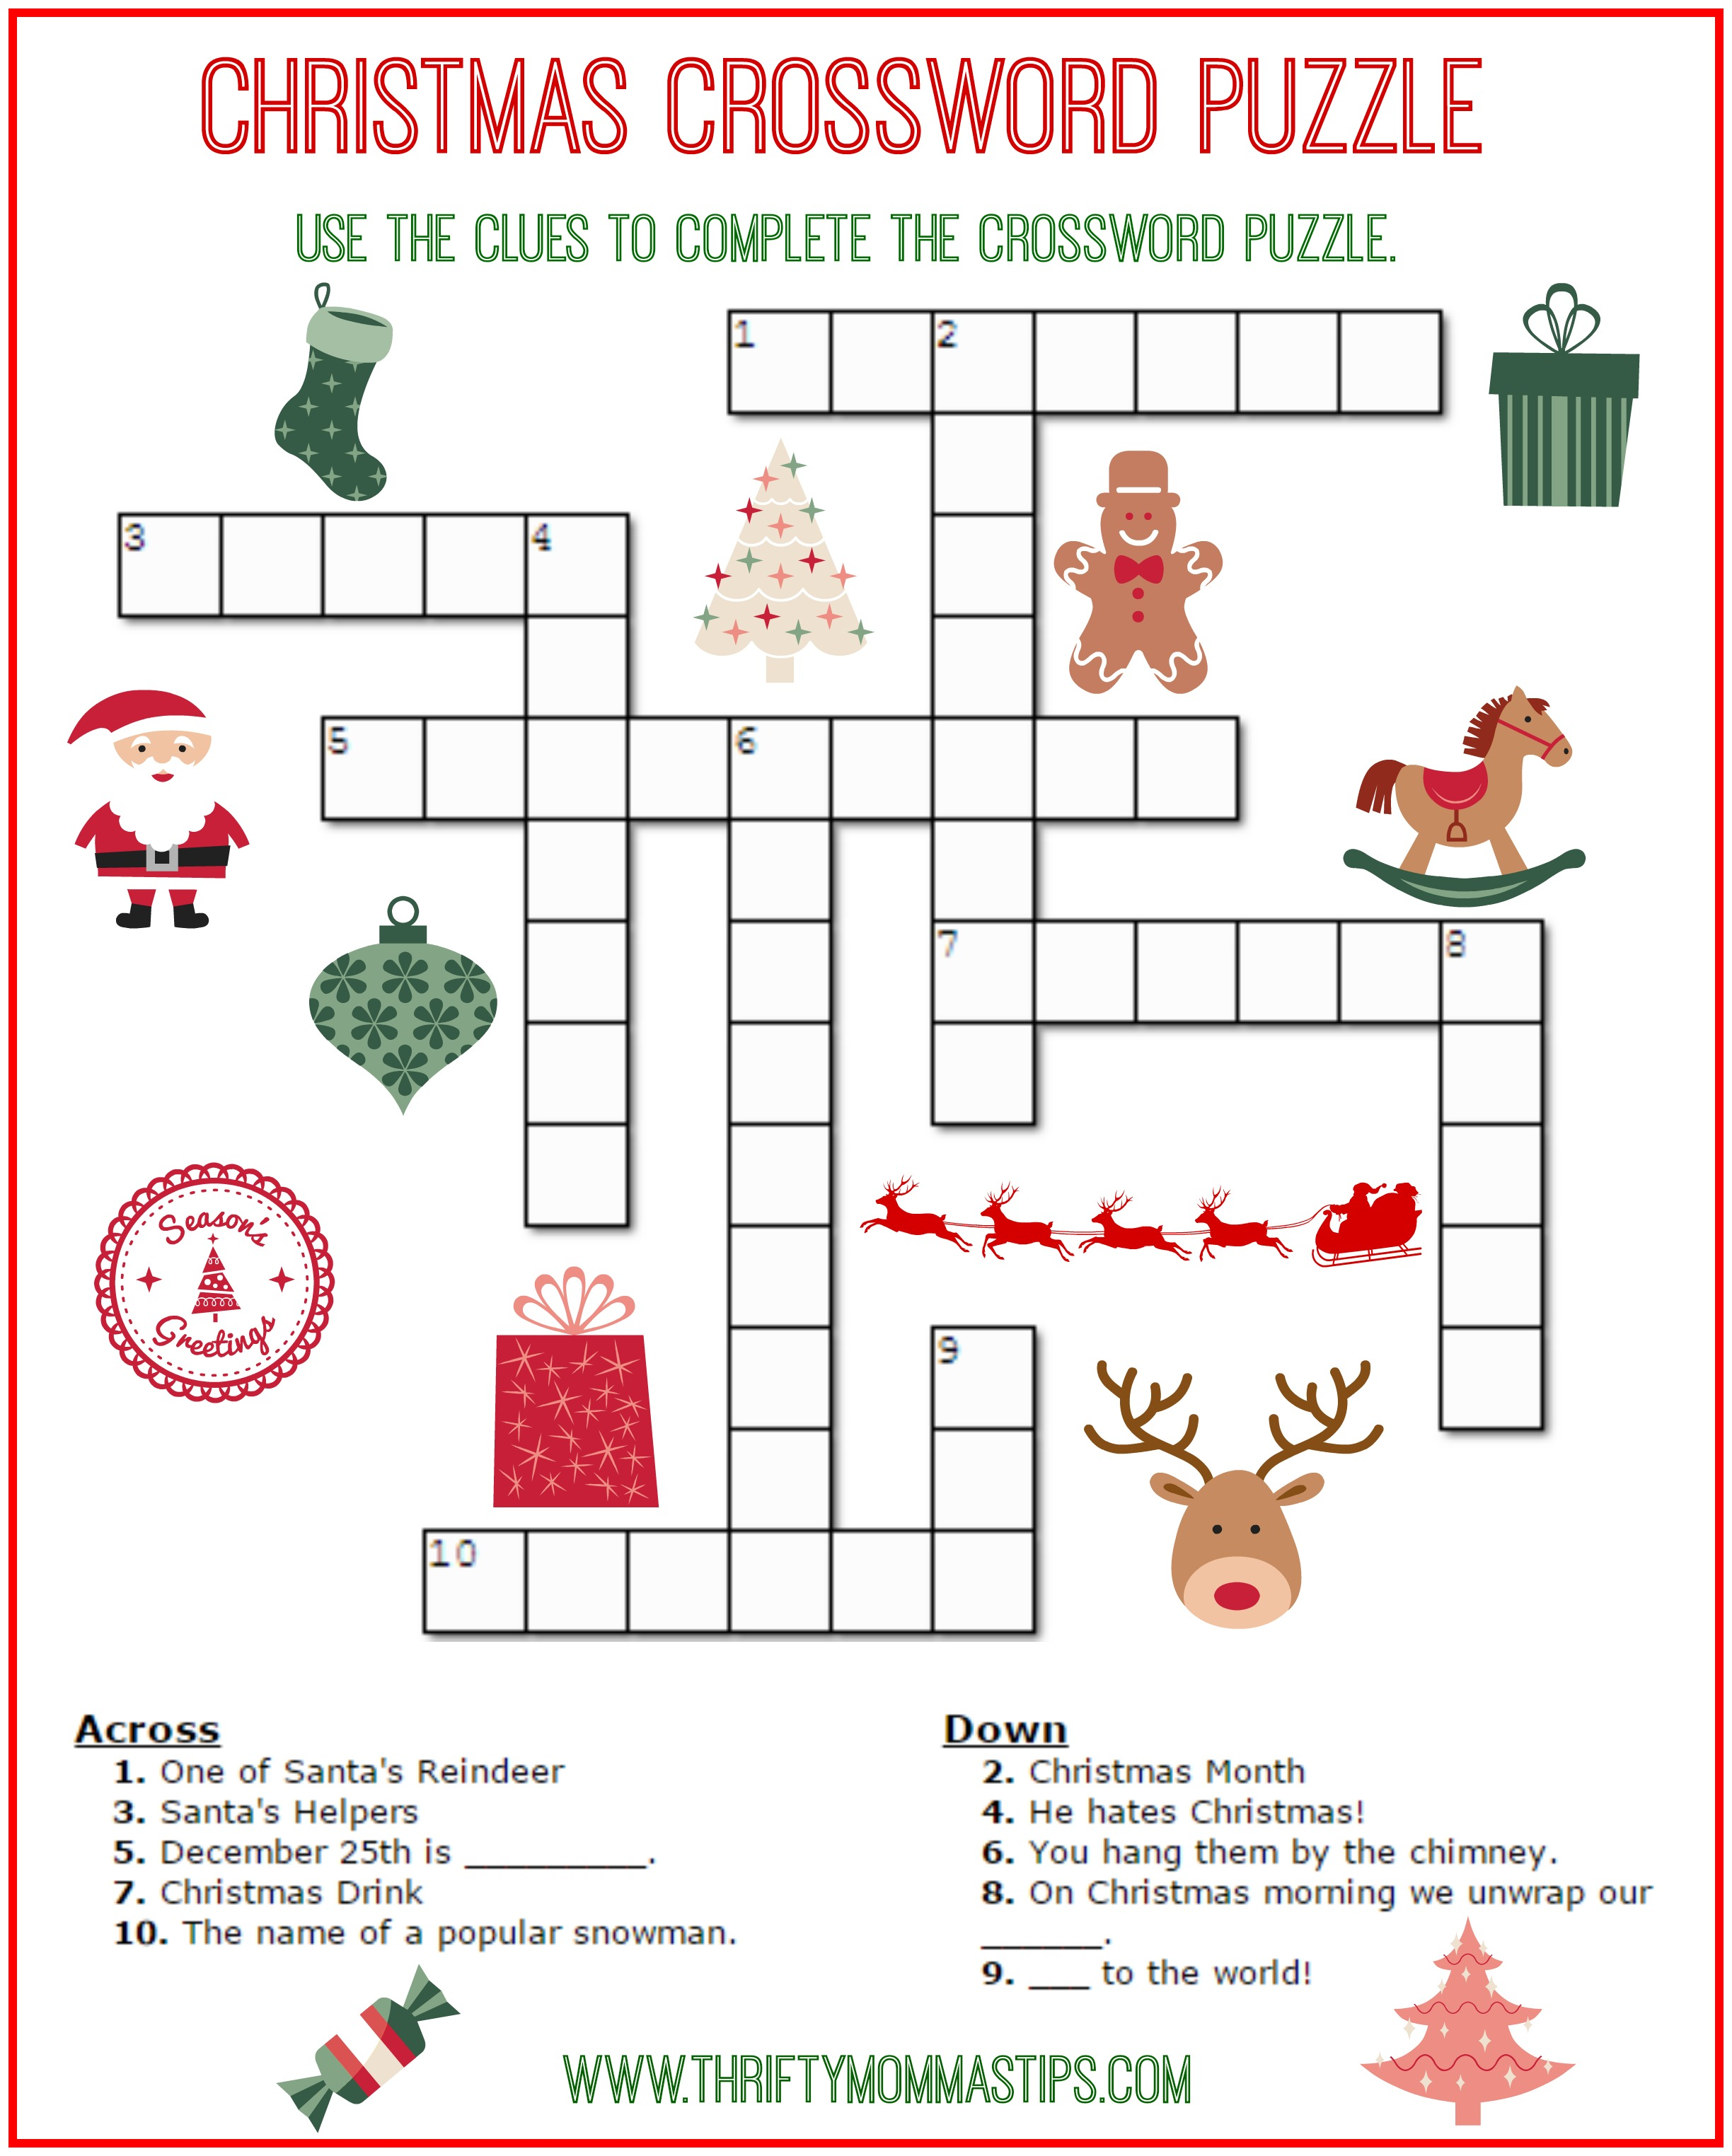 image regarding Free Printable Fill in Puzzles named Xmas Crossword Puzzle Printable - Thrifty Mommas Ideas